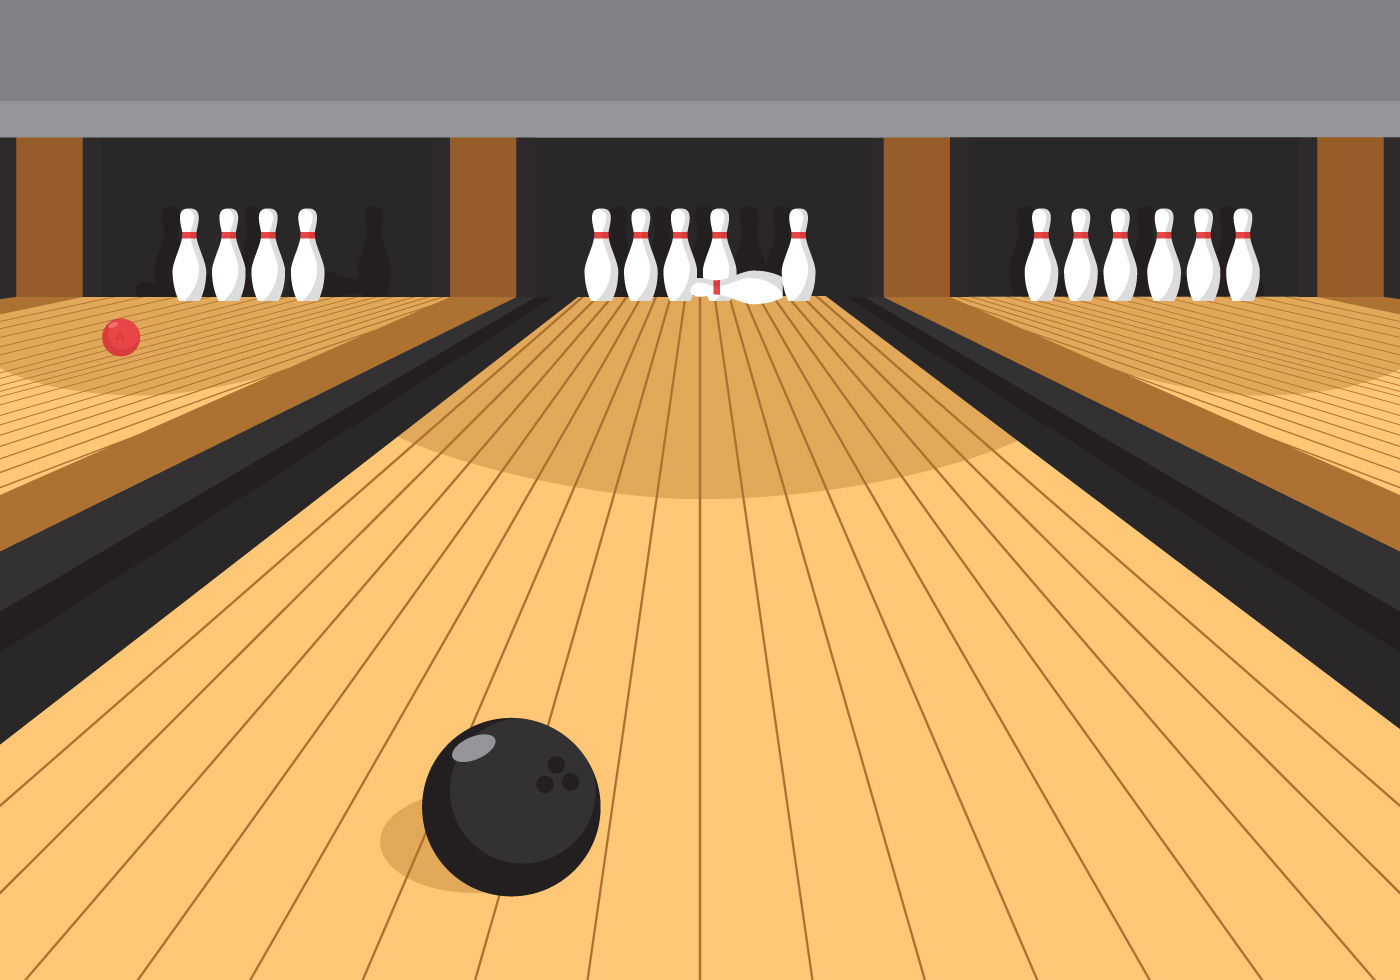 Bowling alley lane clipart.